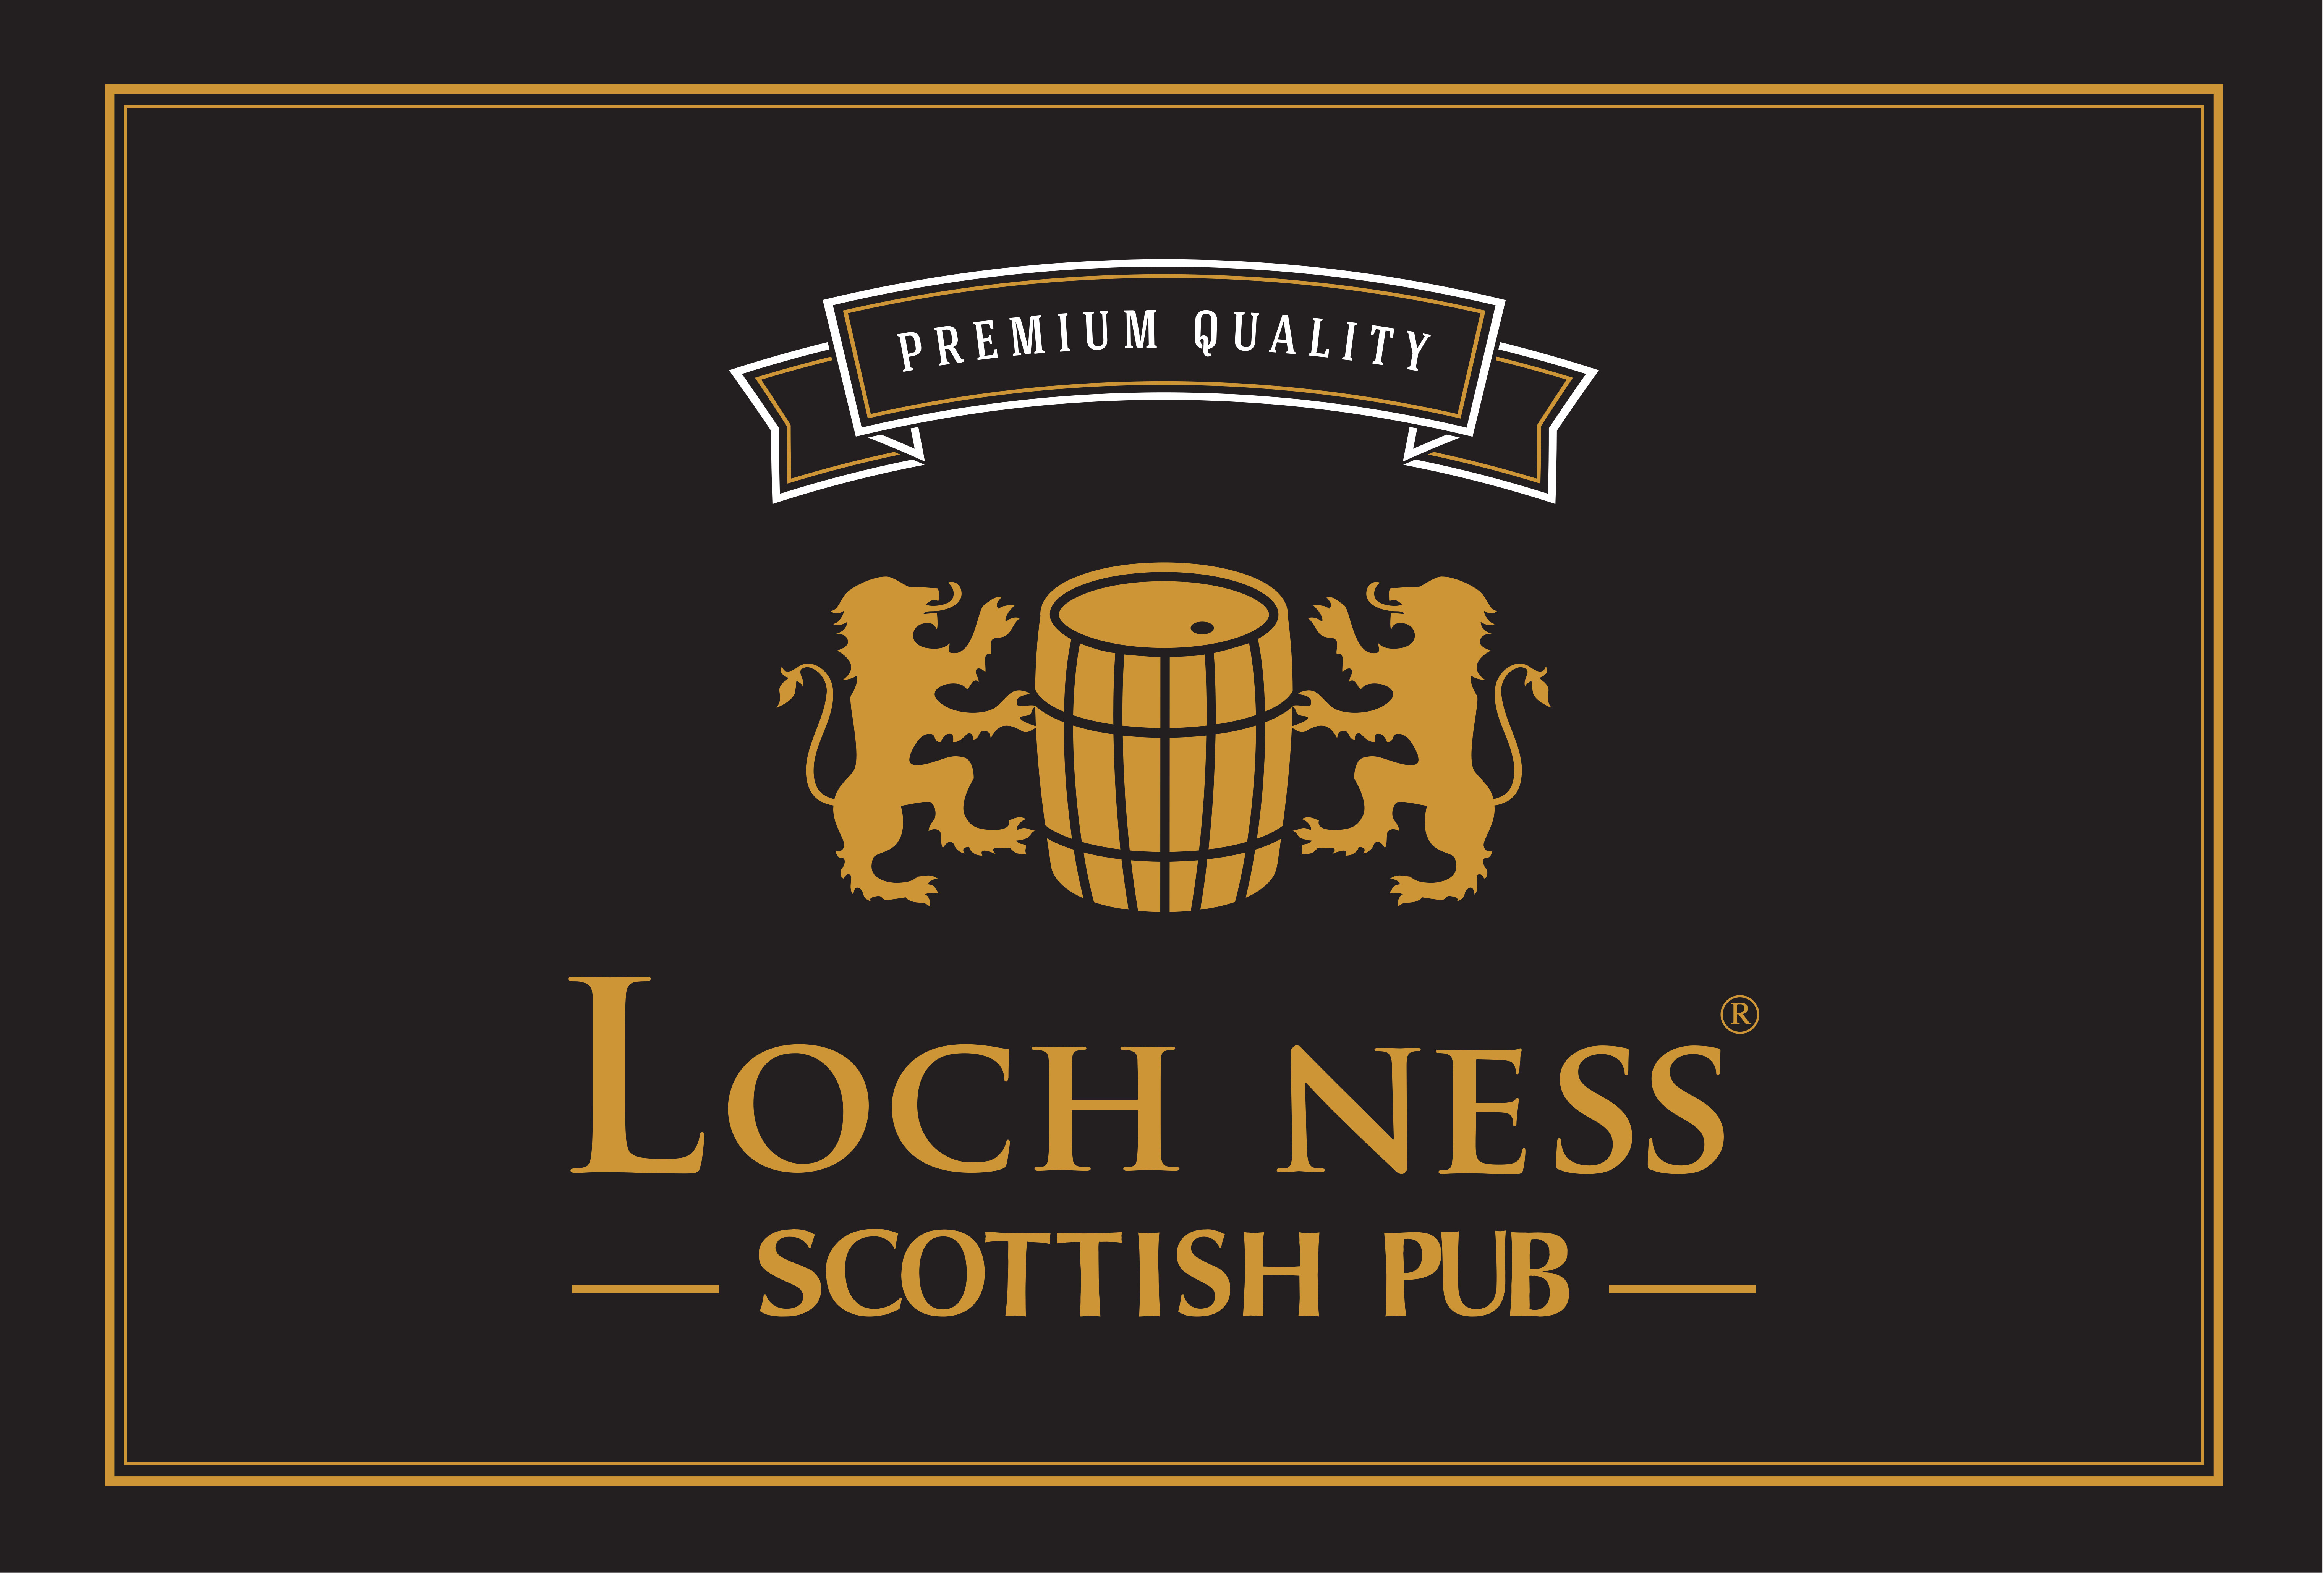 Loch Ness - Scottish Pub